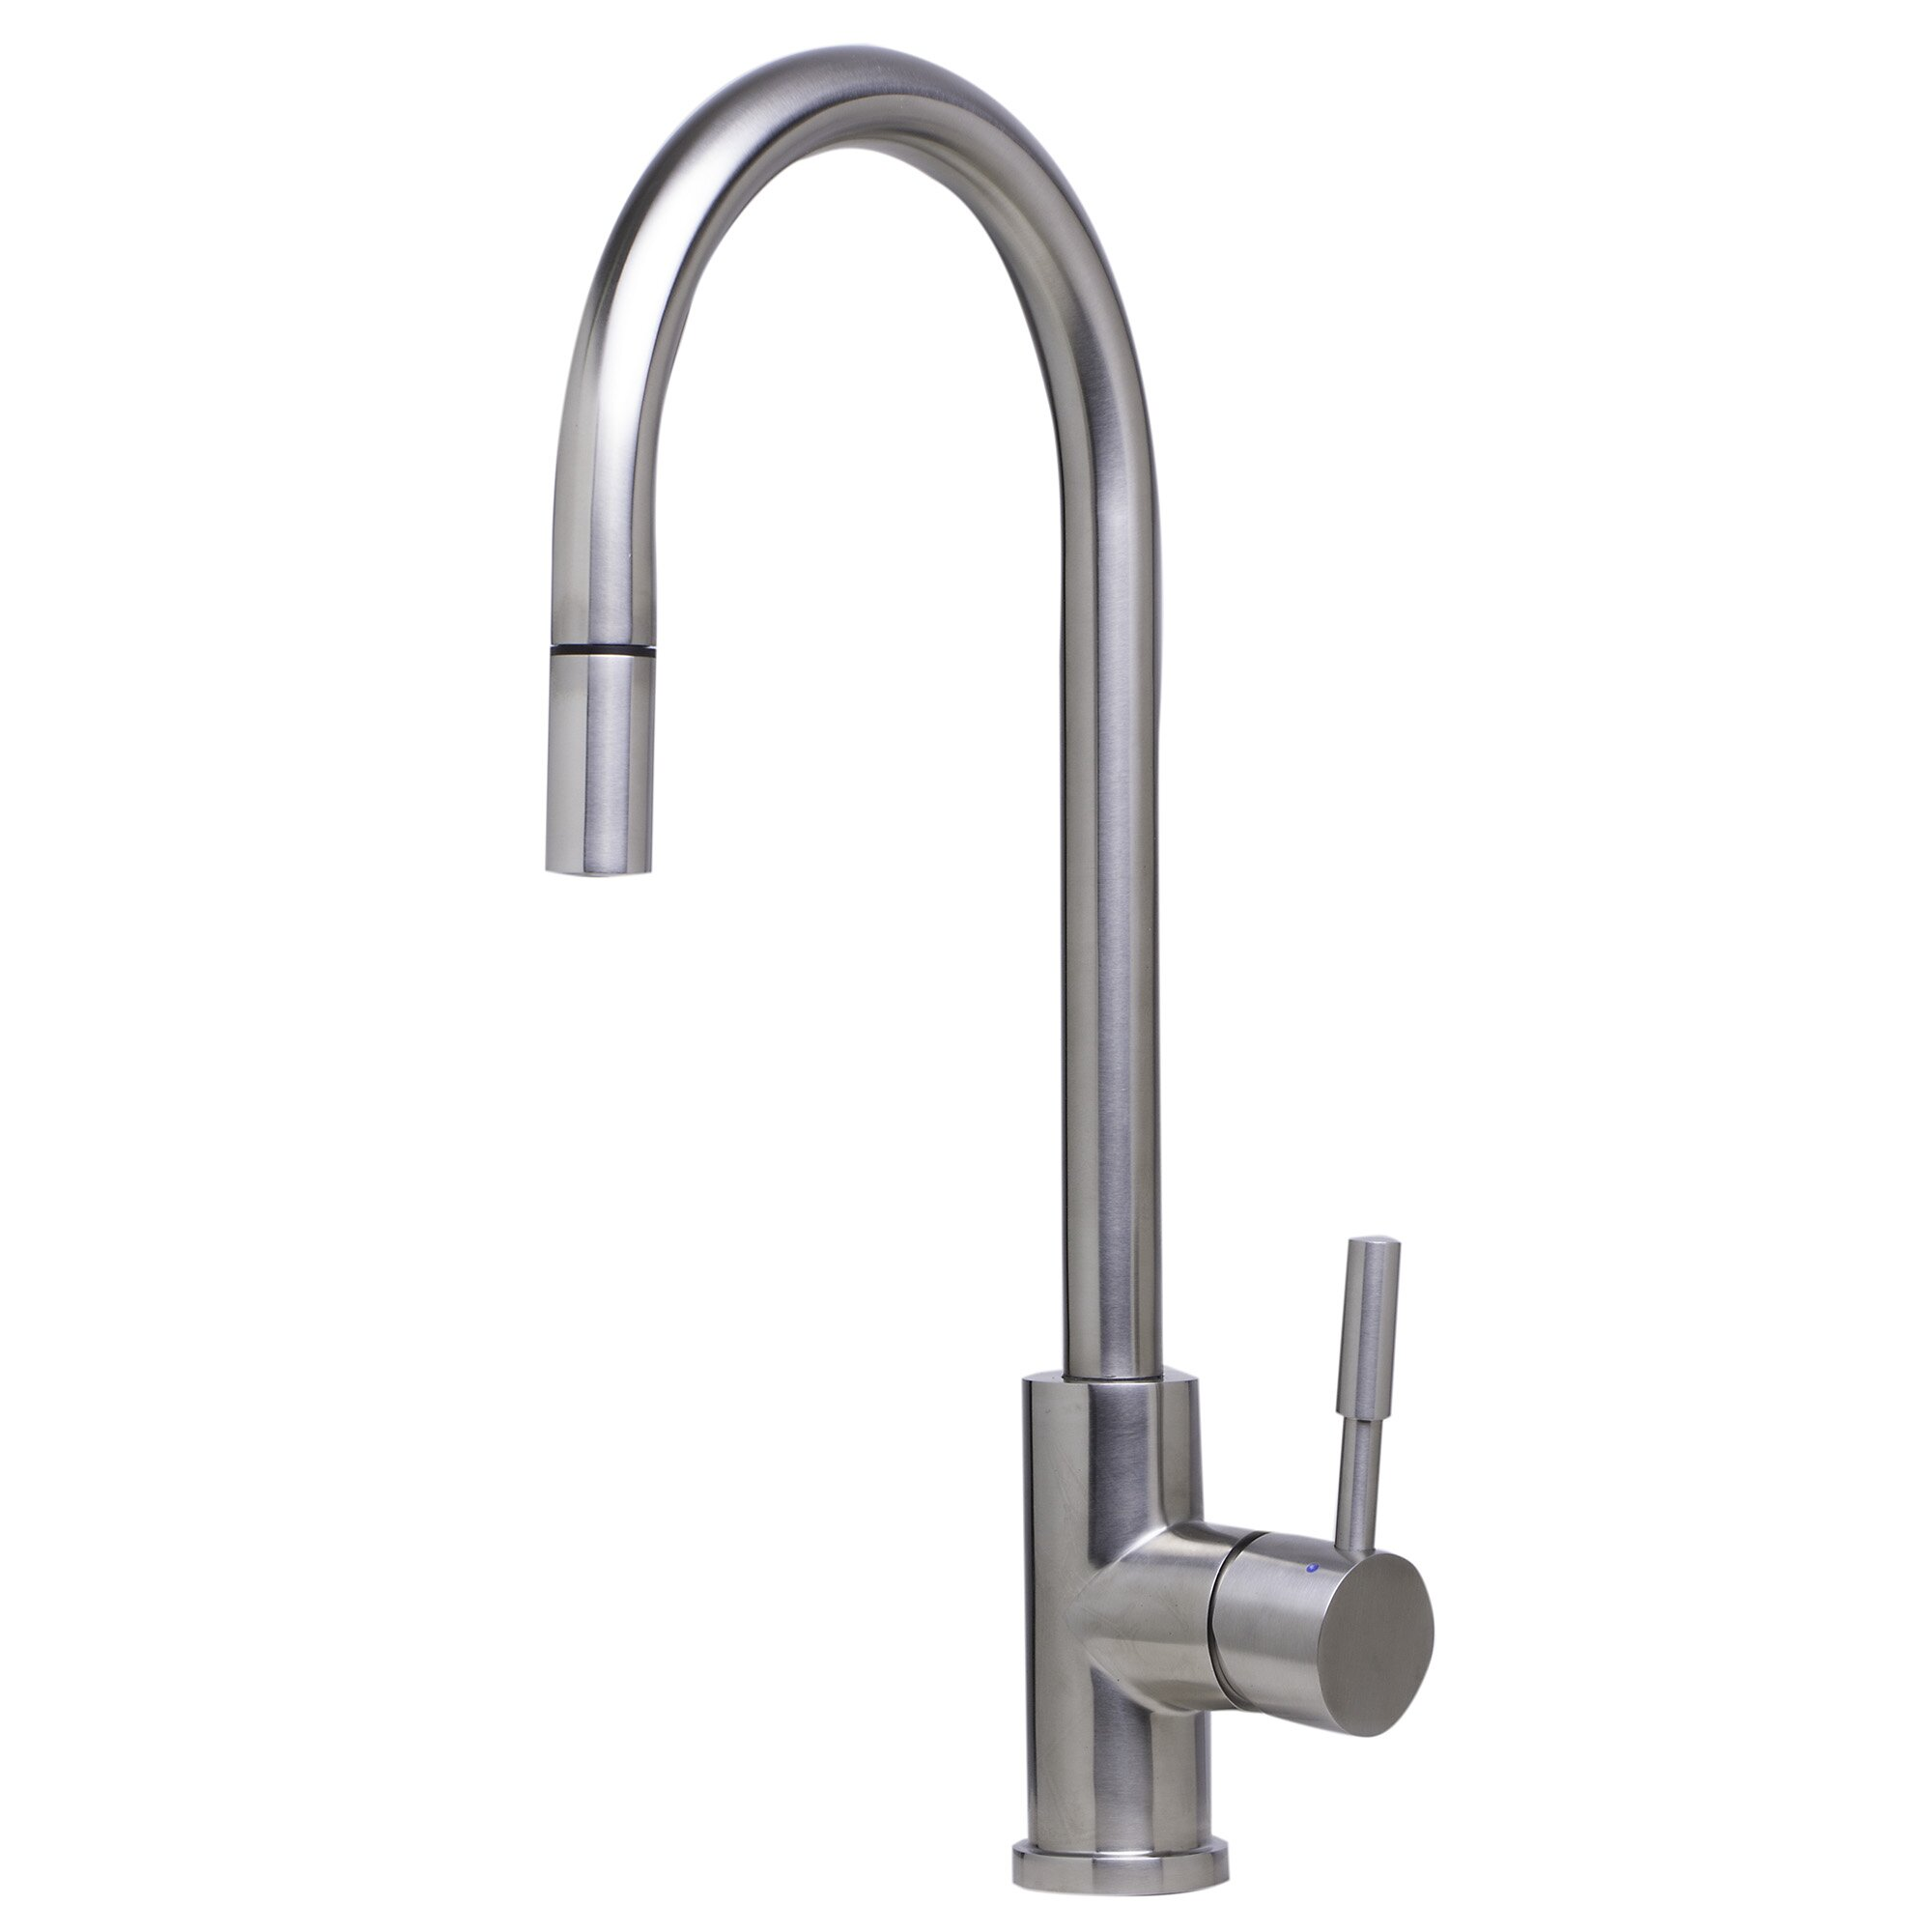 Kitchen Faucet Brands : Single Handle Deck Mount Pull Down Kitchen Faucet by Alfi Brand